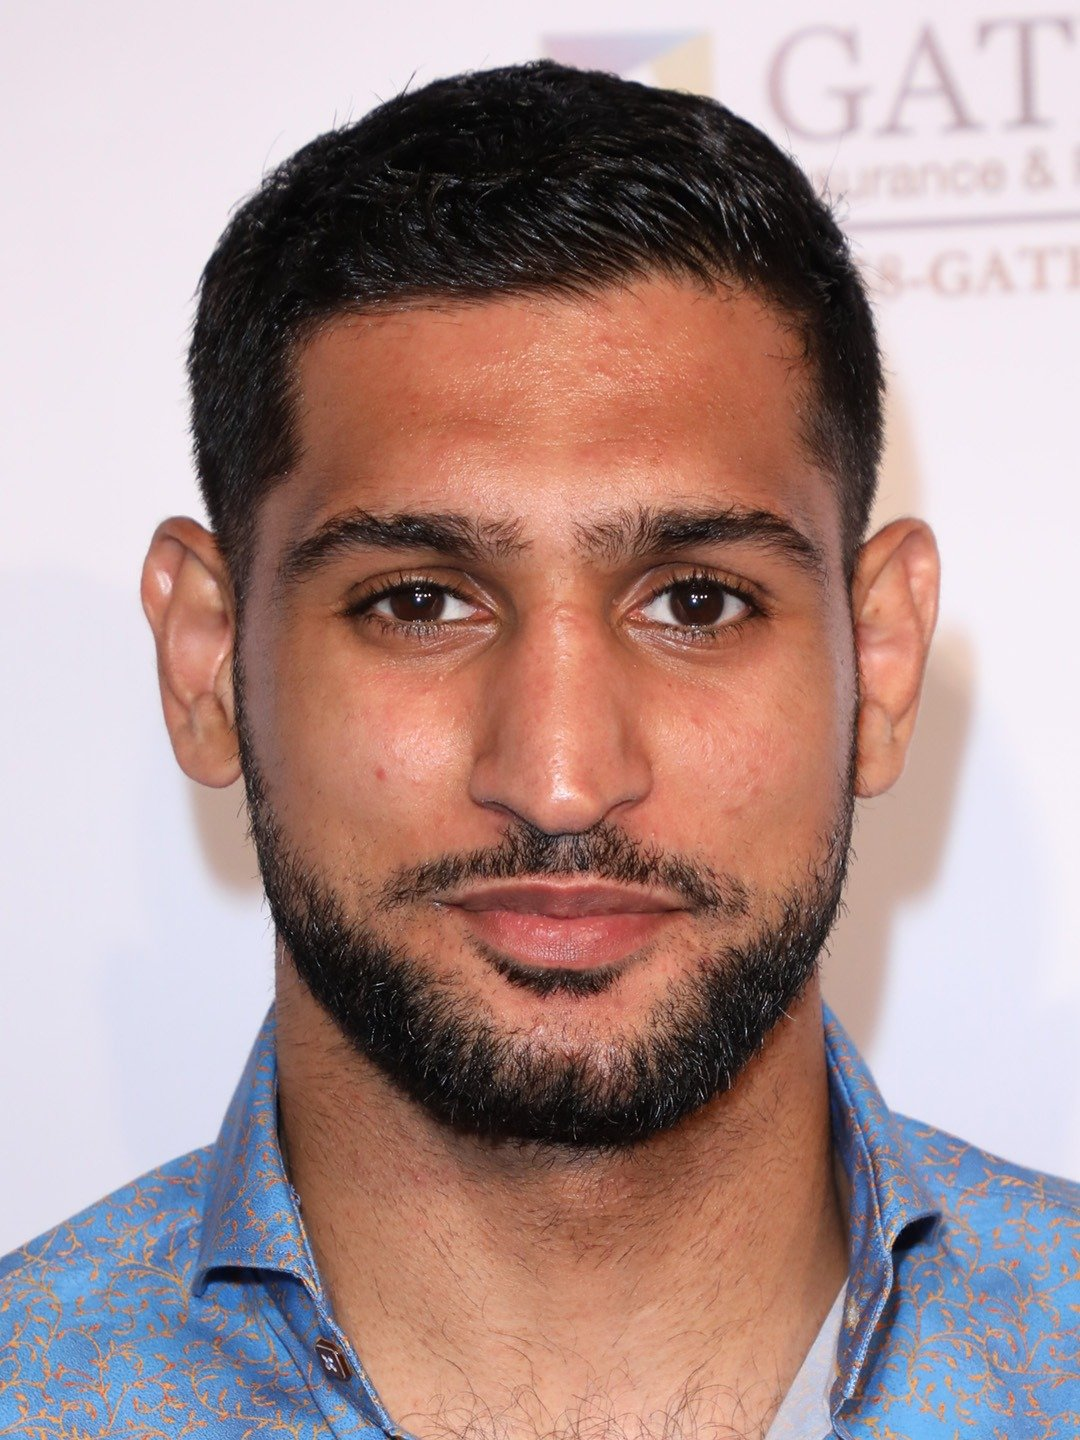 Game on Gala: Celebrating Excellence in Sports held at Boulevard 3 Nightclub  Featuring: Amir Khan Where: Los Angeles, California, United States When: 17 Jul 2018 Credit: Sheri Determan/WENN.com (Newscom TagID: wennphotossix926999.jpg) [Photo via Newscom]